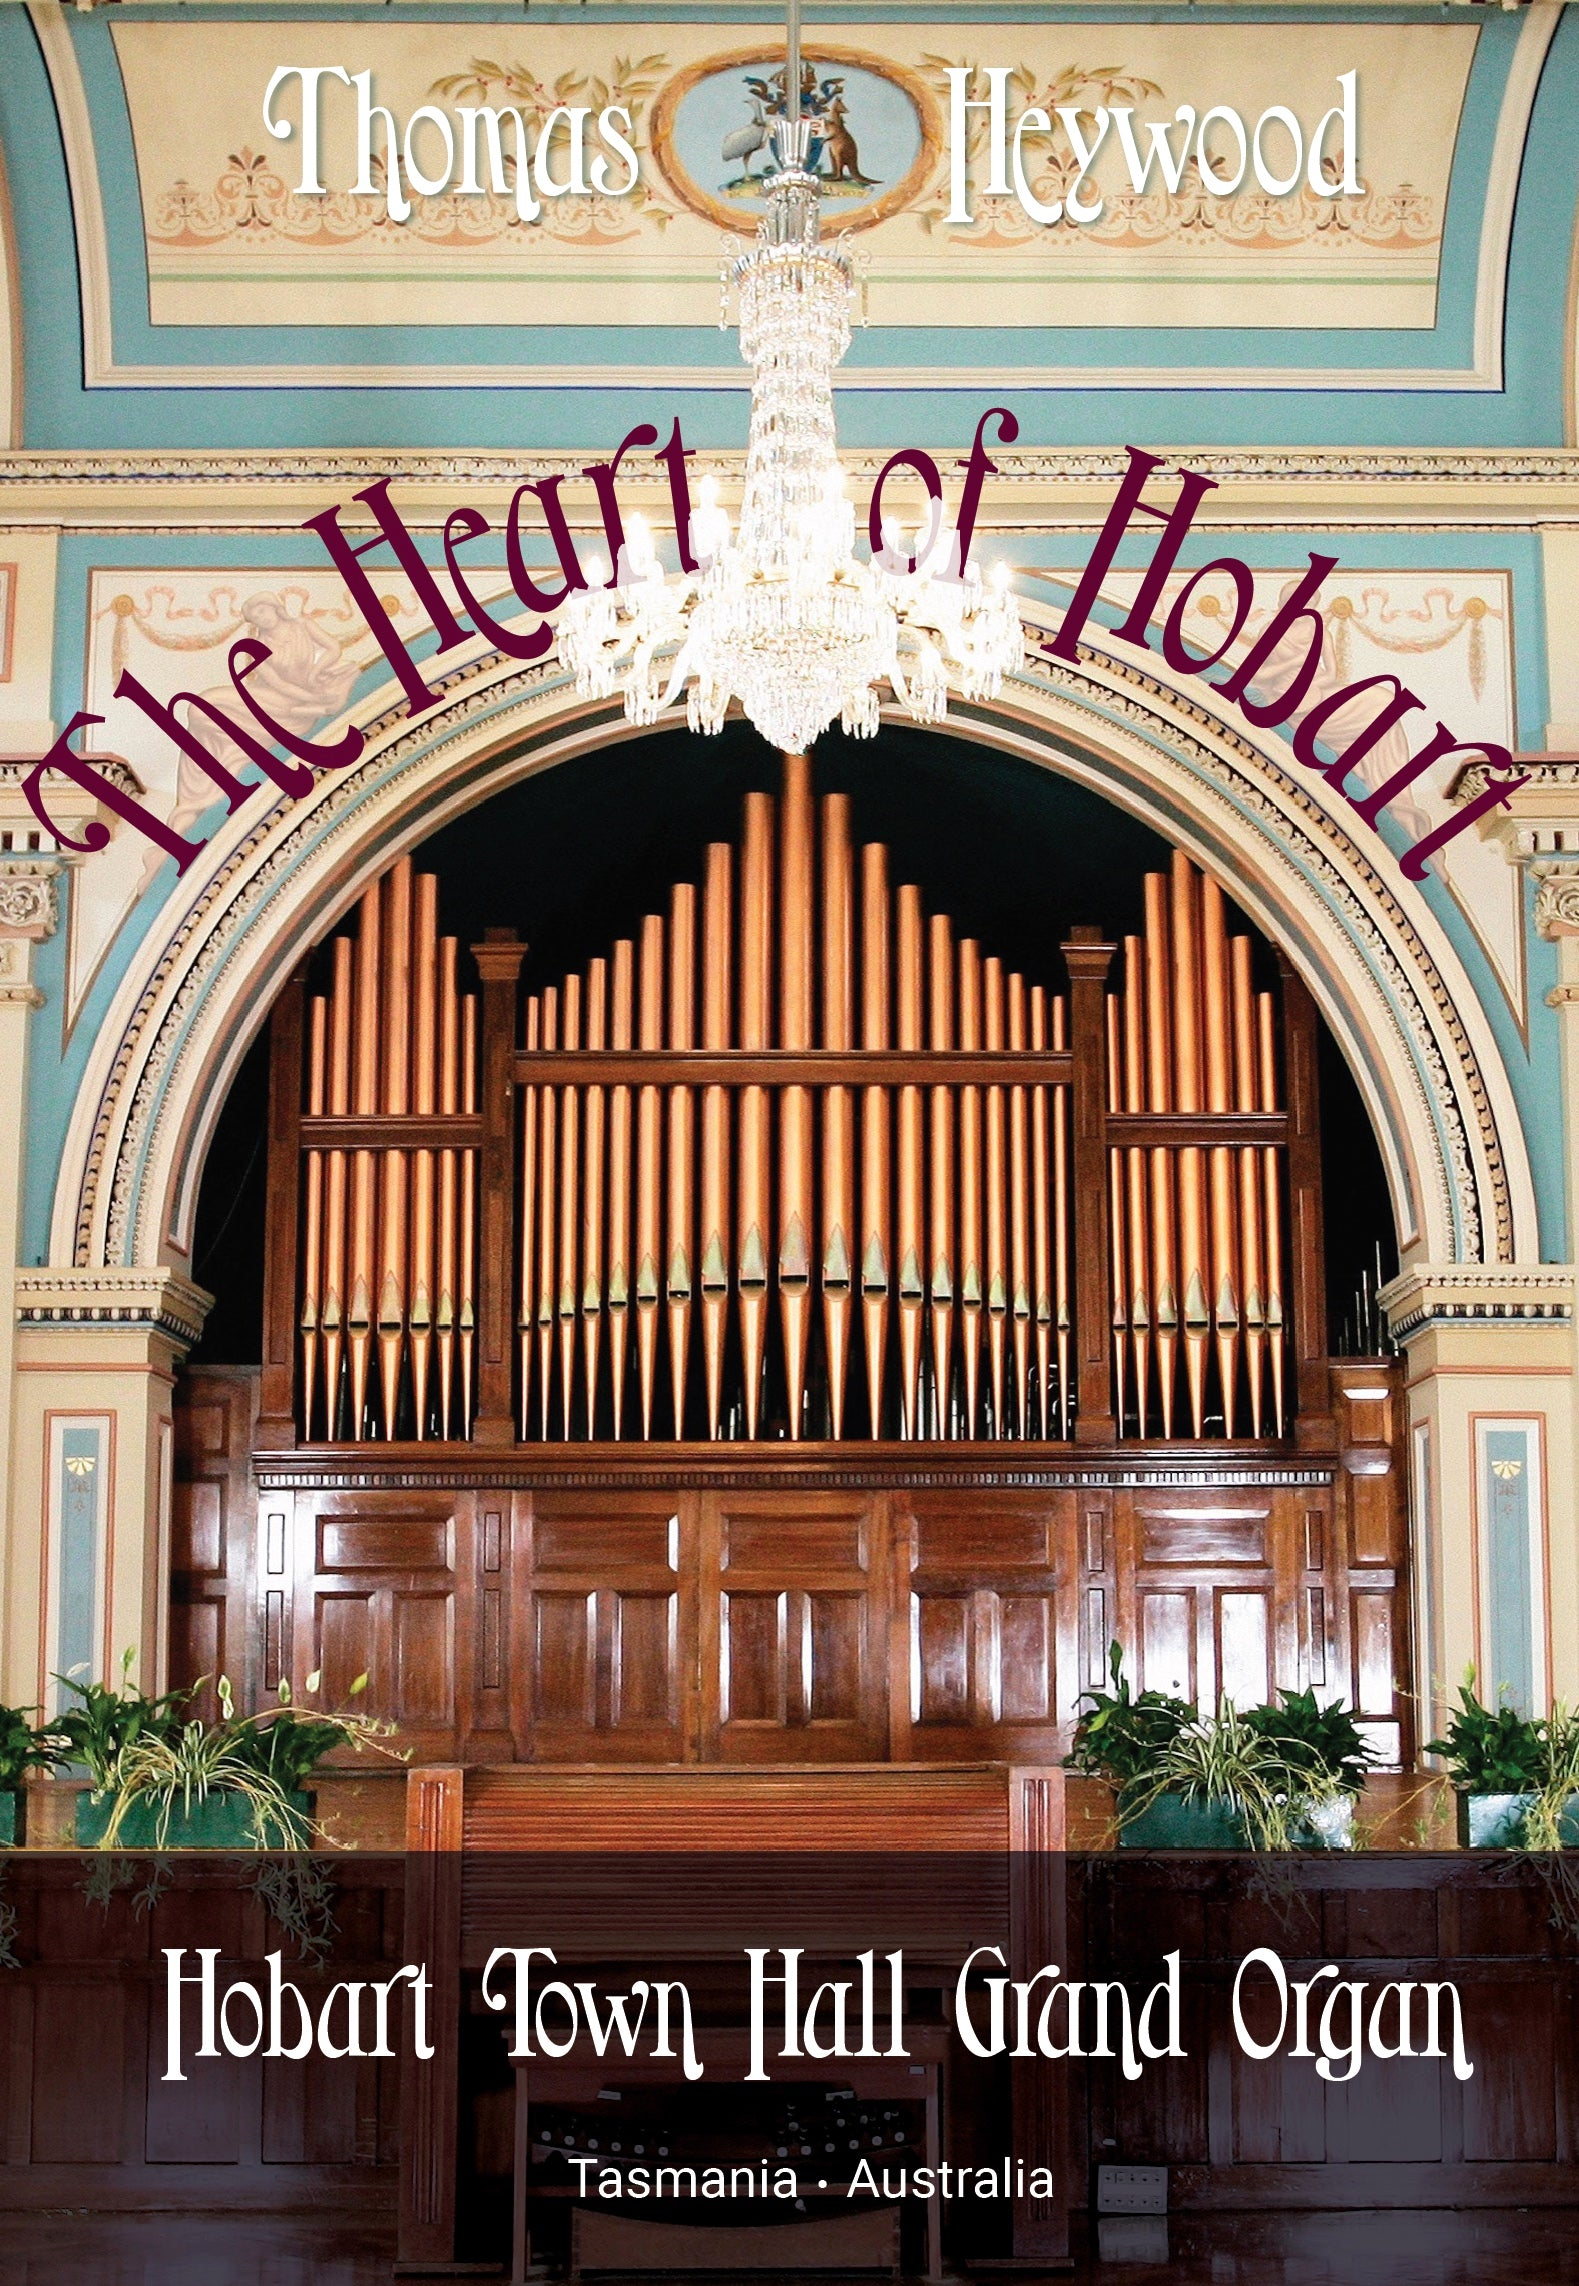 The Heart of Hobart (DVD) - Concert Organ International